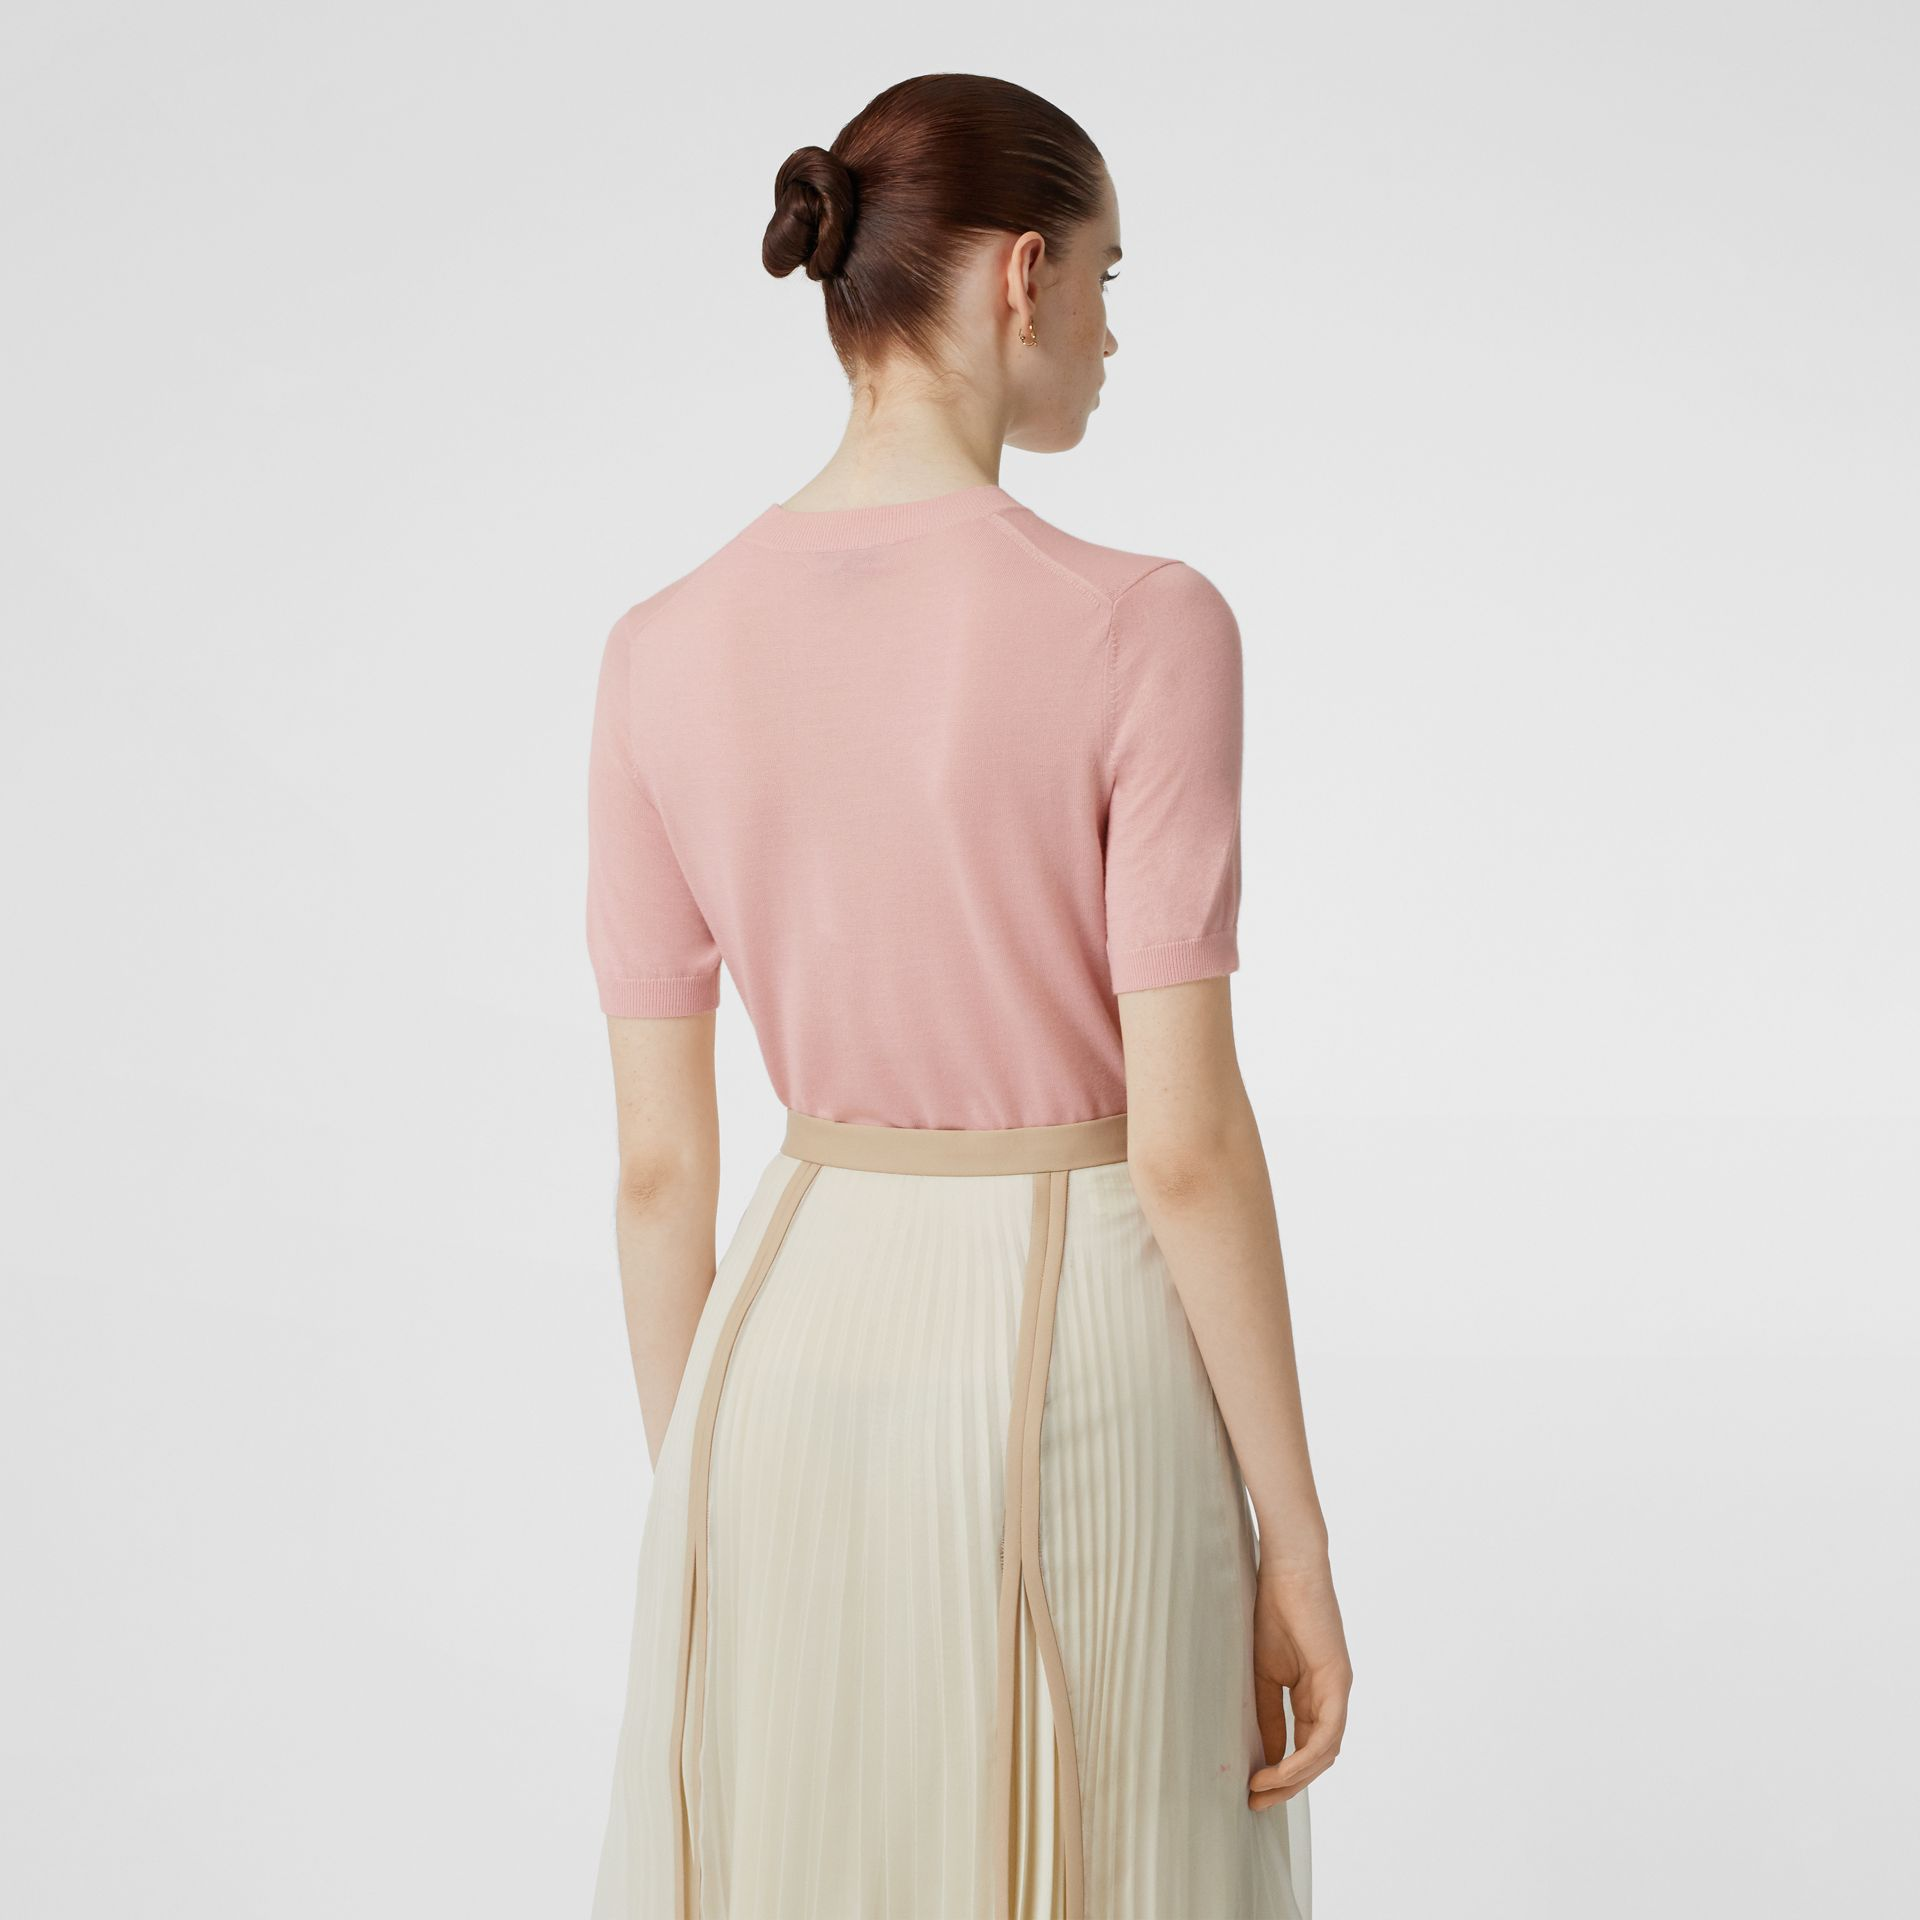 Monogram Motif Cashmere Top in Pink - Women | Burberry Canada - gallery image 2